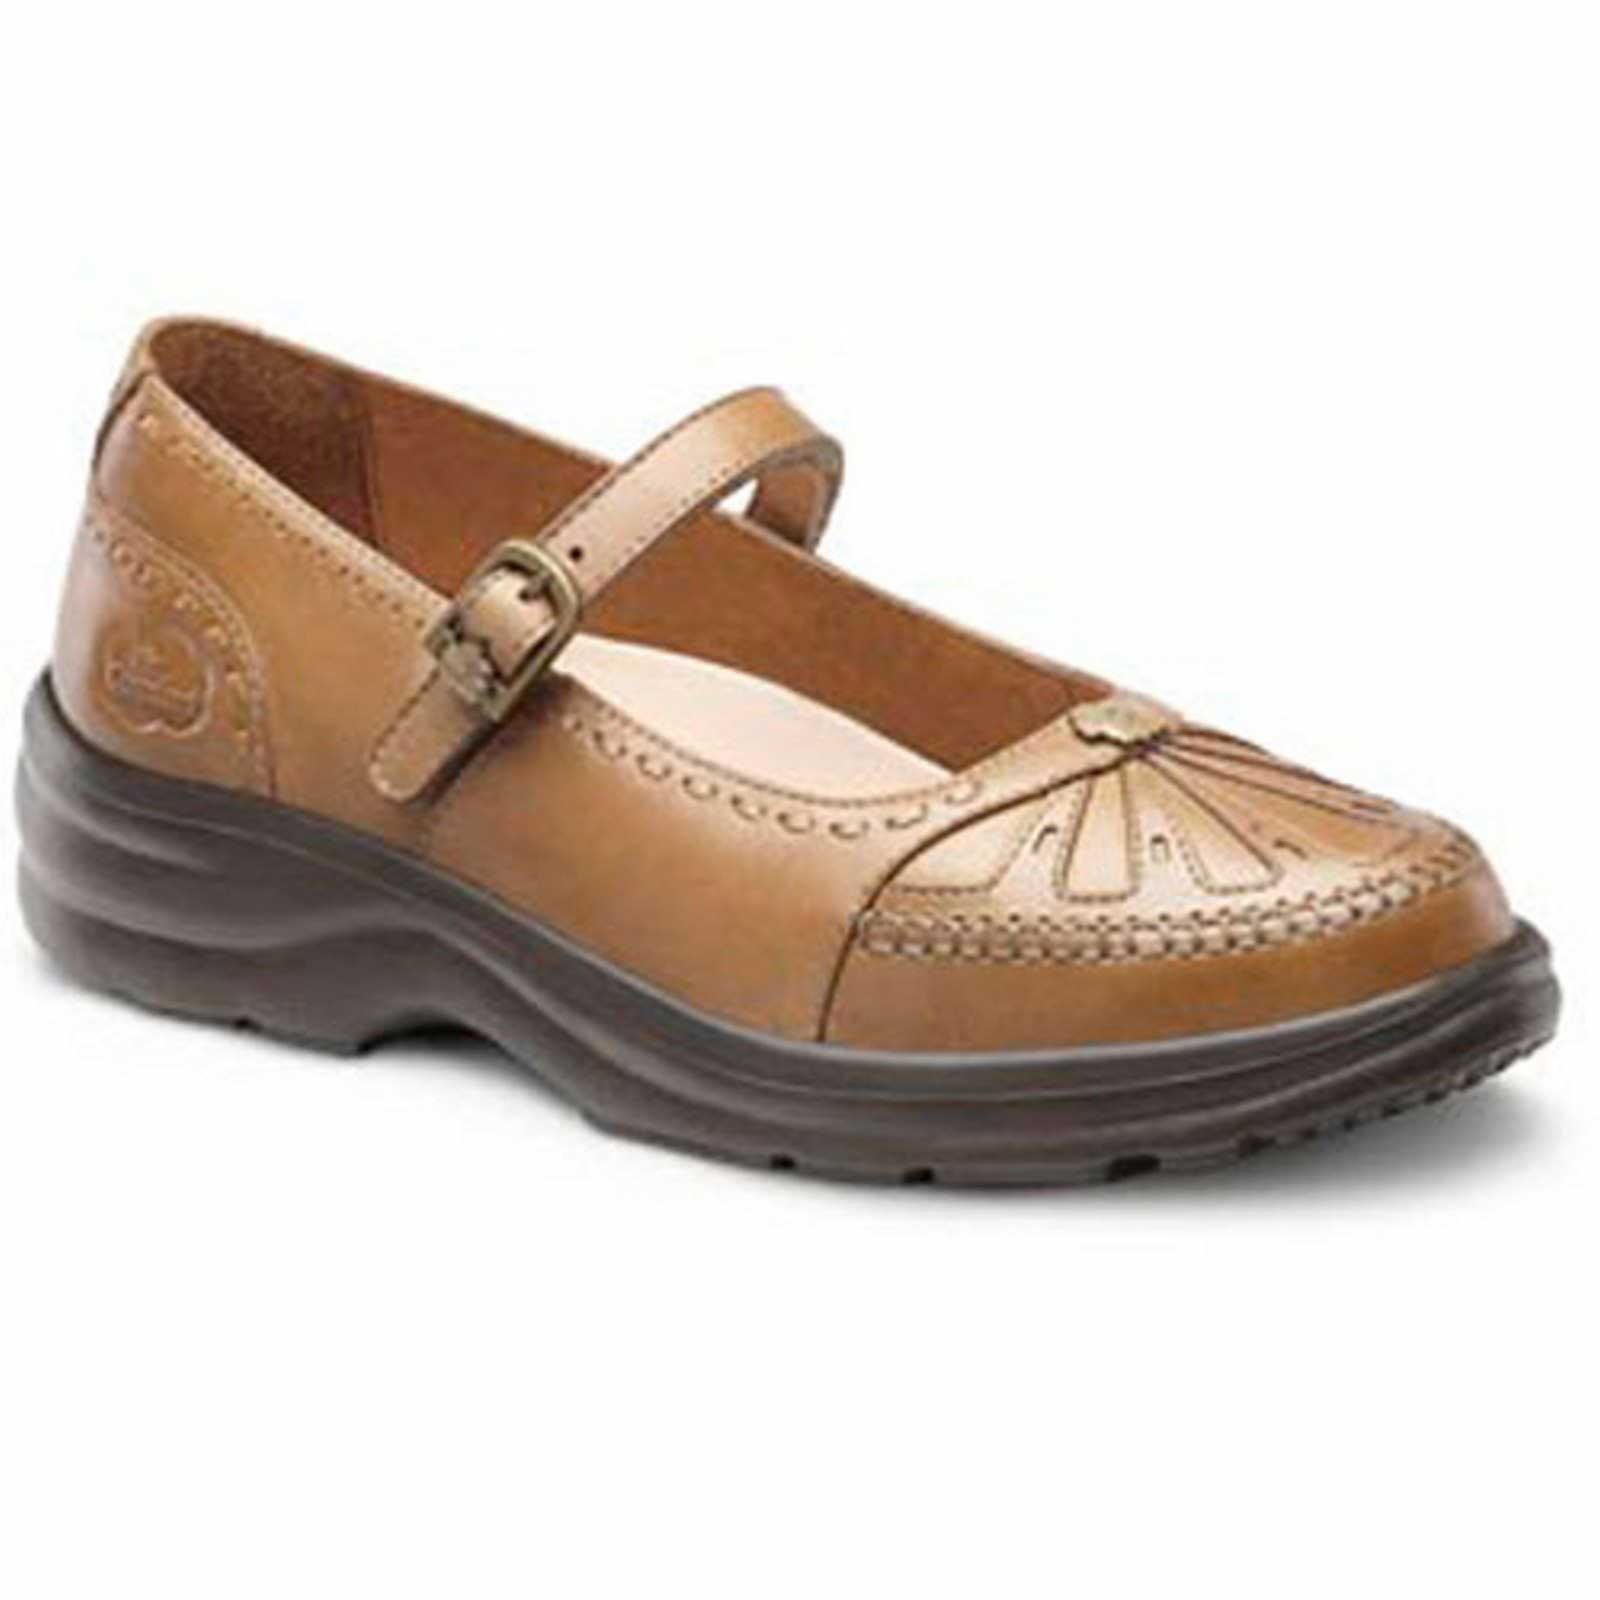 Dr Comfort Shoes - Paradise - Women's Therapeutic Diabetic Shoe with Gel Plus Inserts - Casual and Dress - Medium (A-B) - Extra at Sears.com